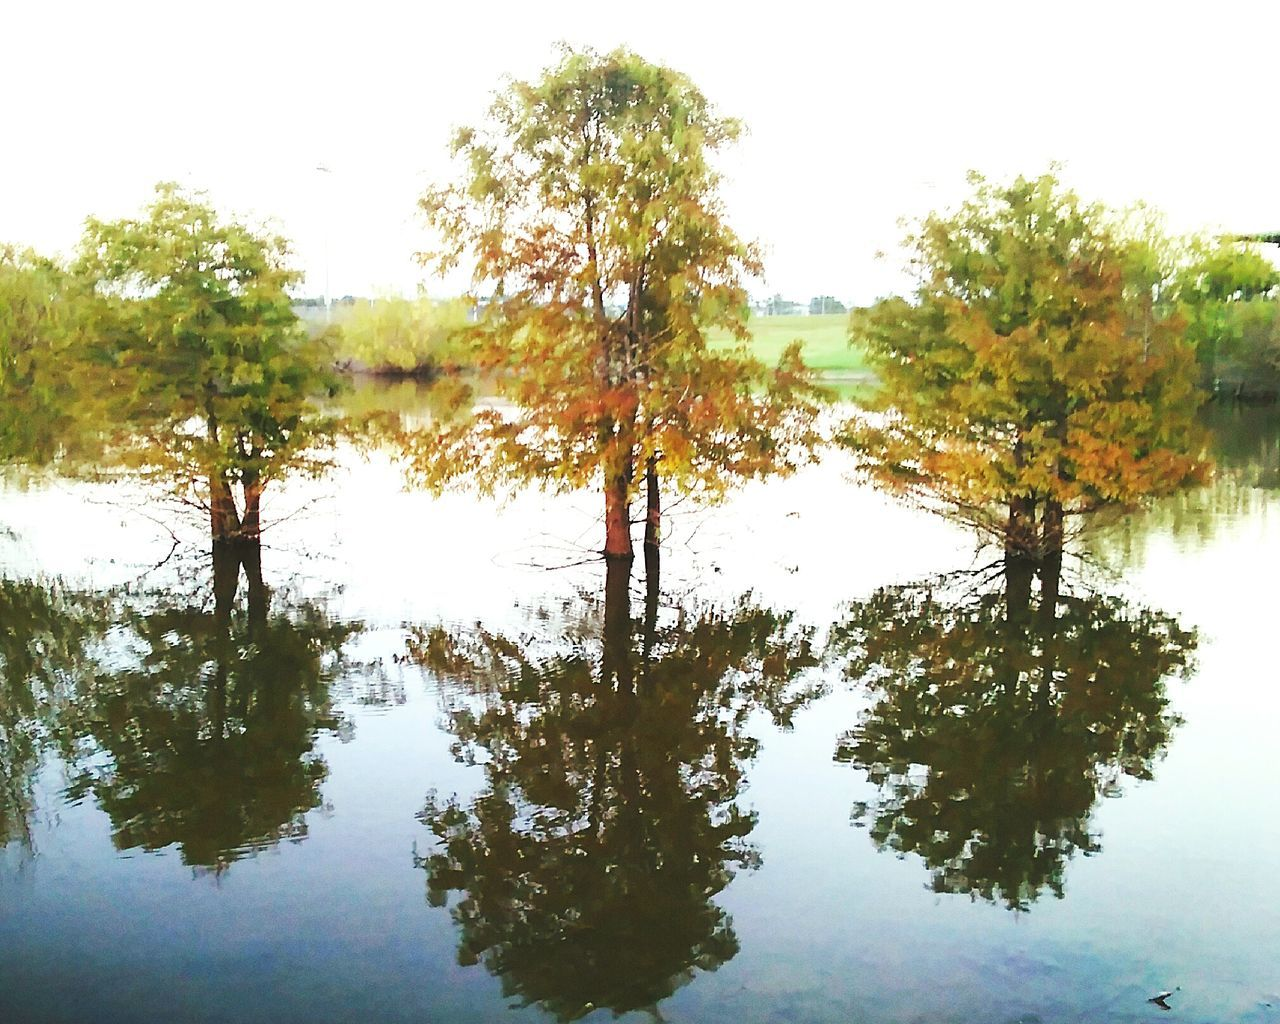 tree, reflection, nature, lake, tranquility, tranquil scene, water, beauty in nature, no people, outdoors, scenics, day, growth, forest, sky, clear sky